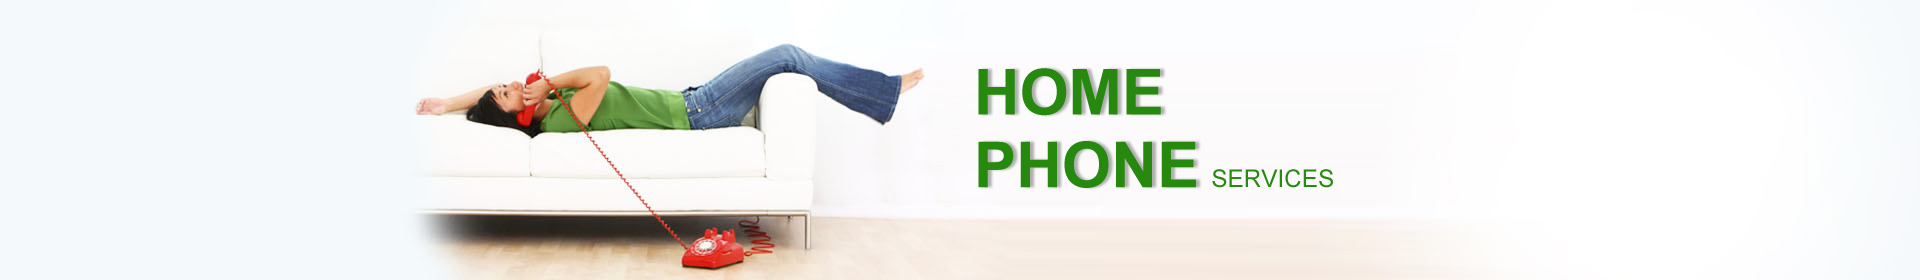 home phone page banner